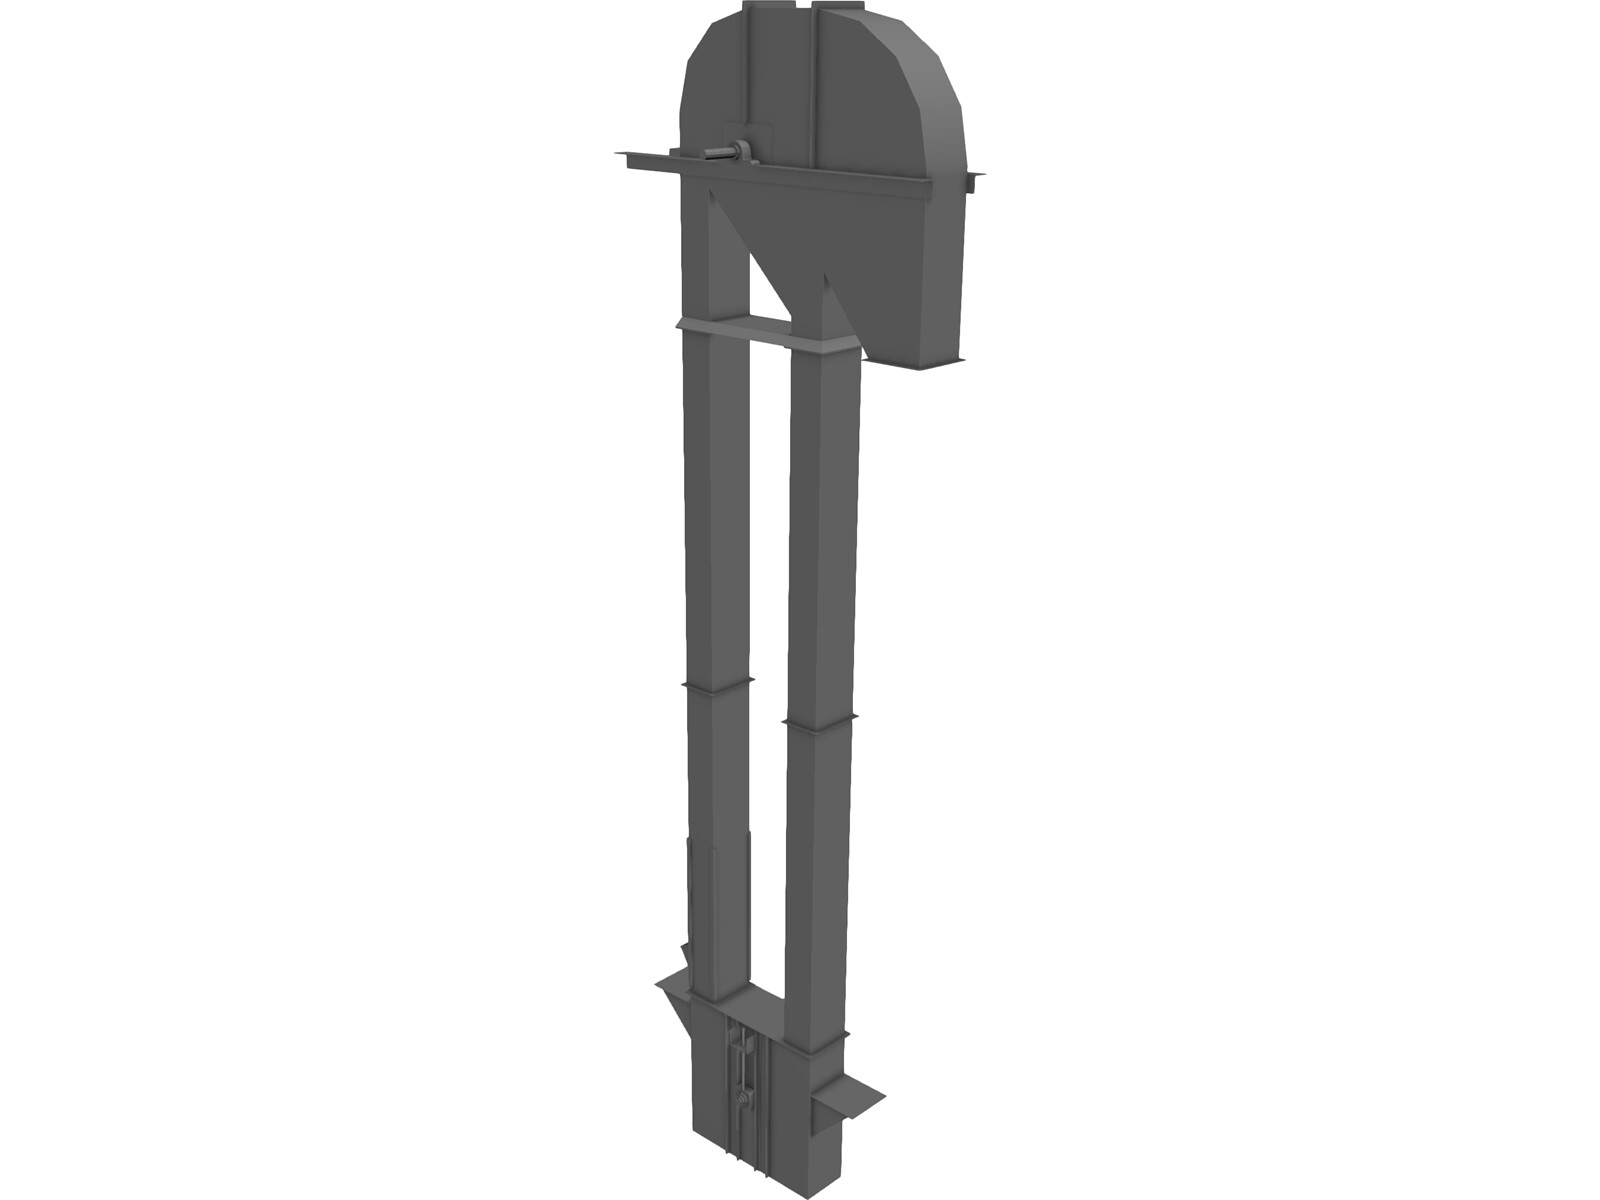 36 Inch Pulley Elevator Leg with Boot and Head 3D Model